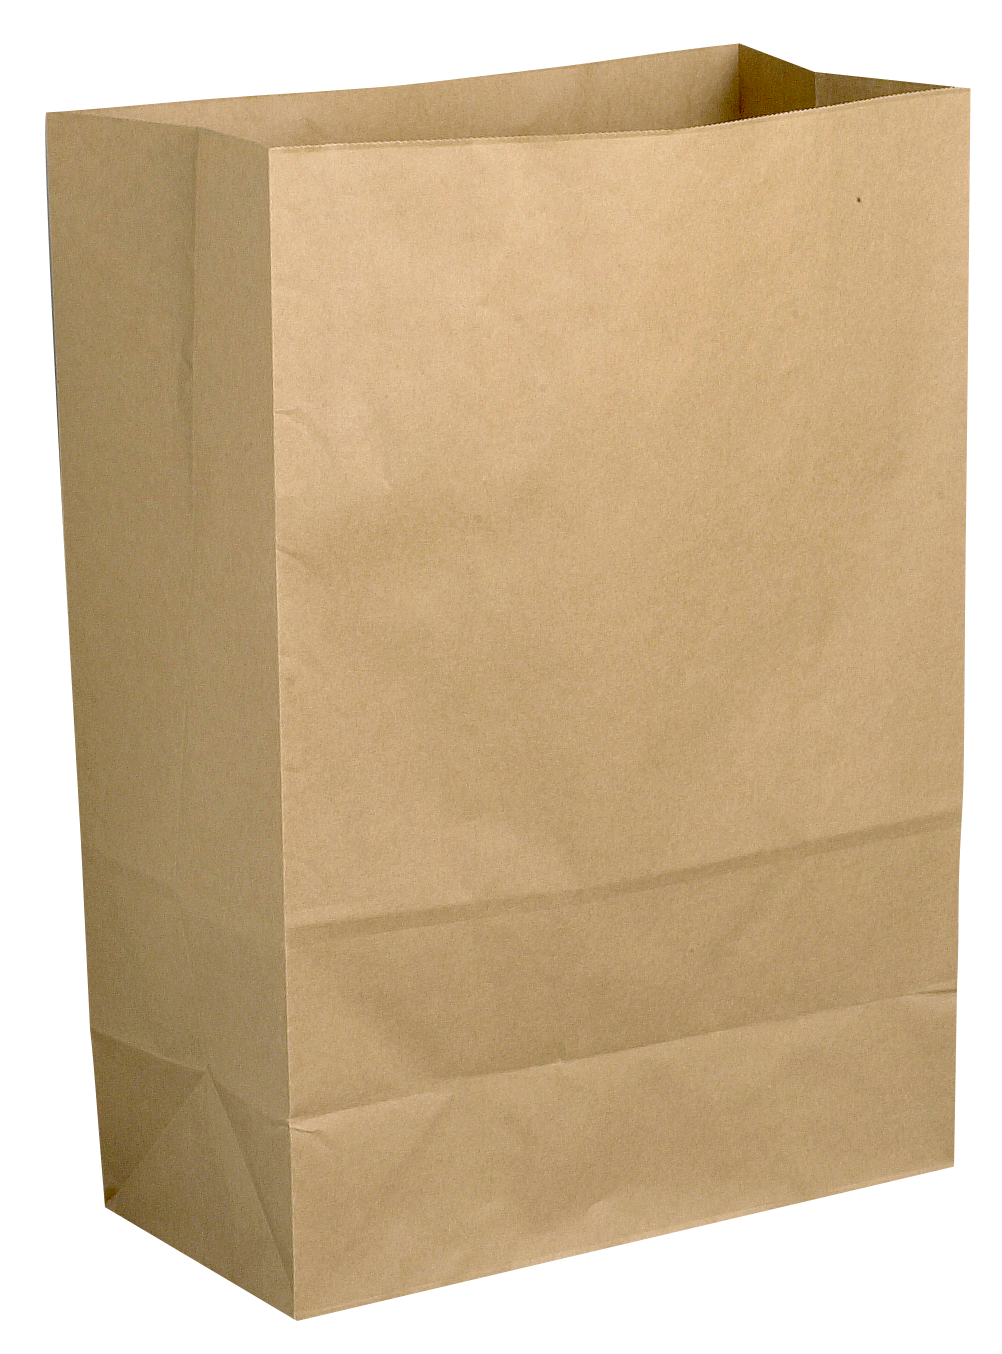 7 BROWN PAPER TAKEAWAY BAG KS1A PK 250